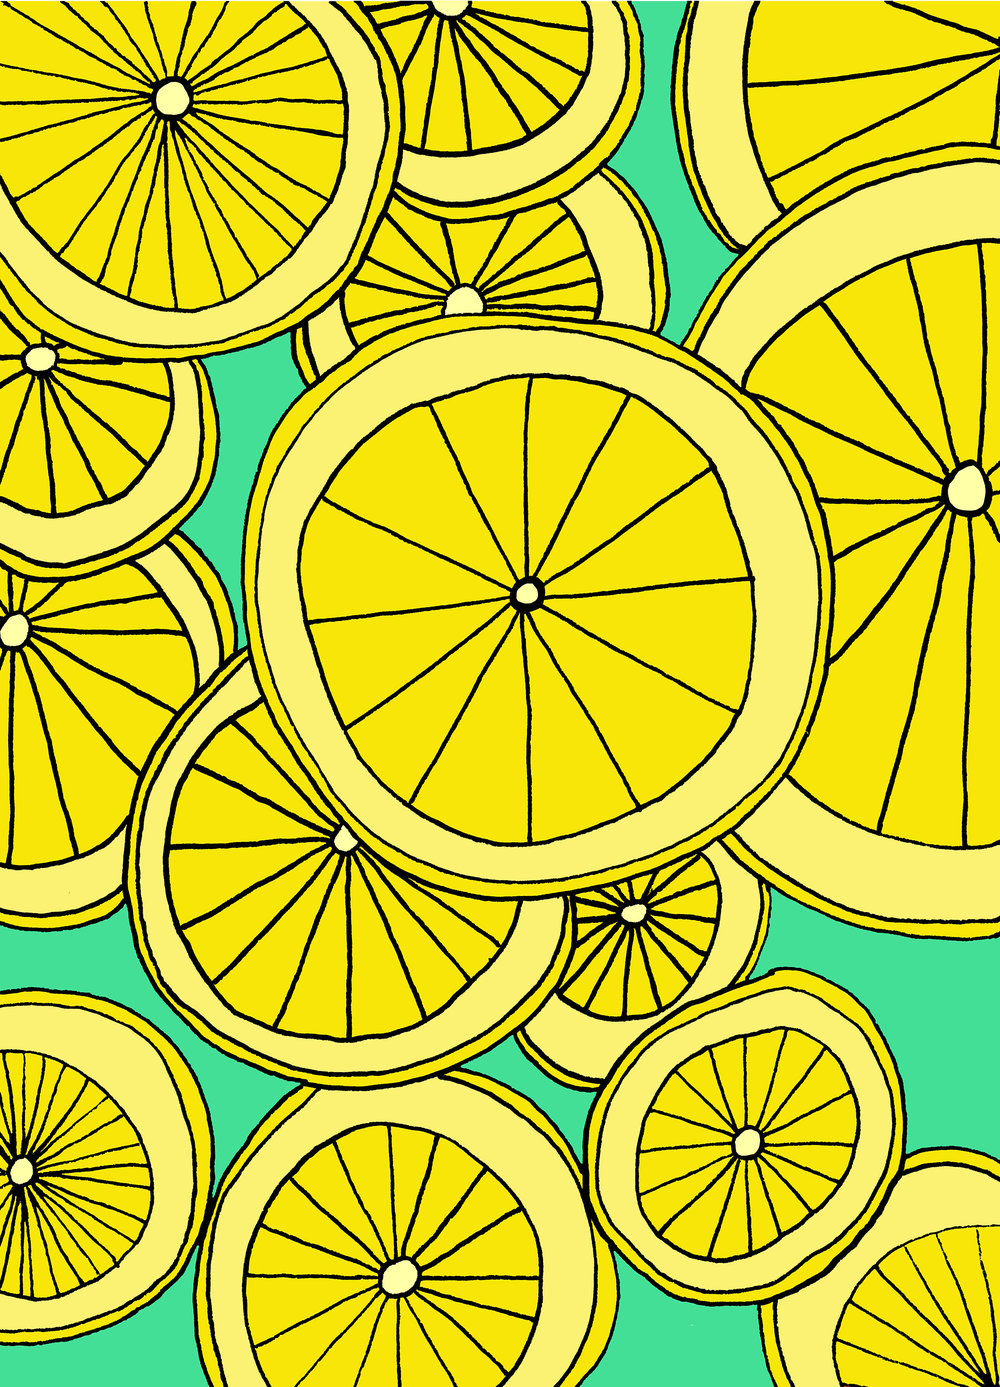 Lemons Illustration by Emma Freeman Designs